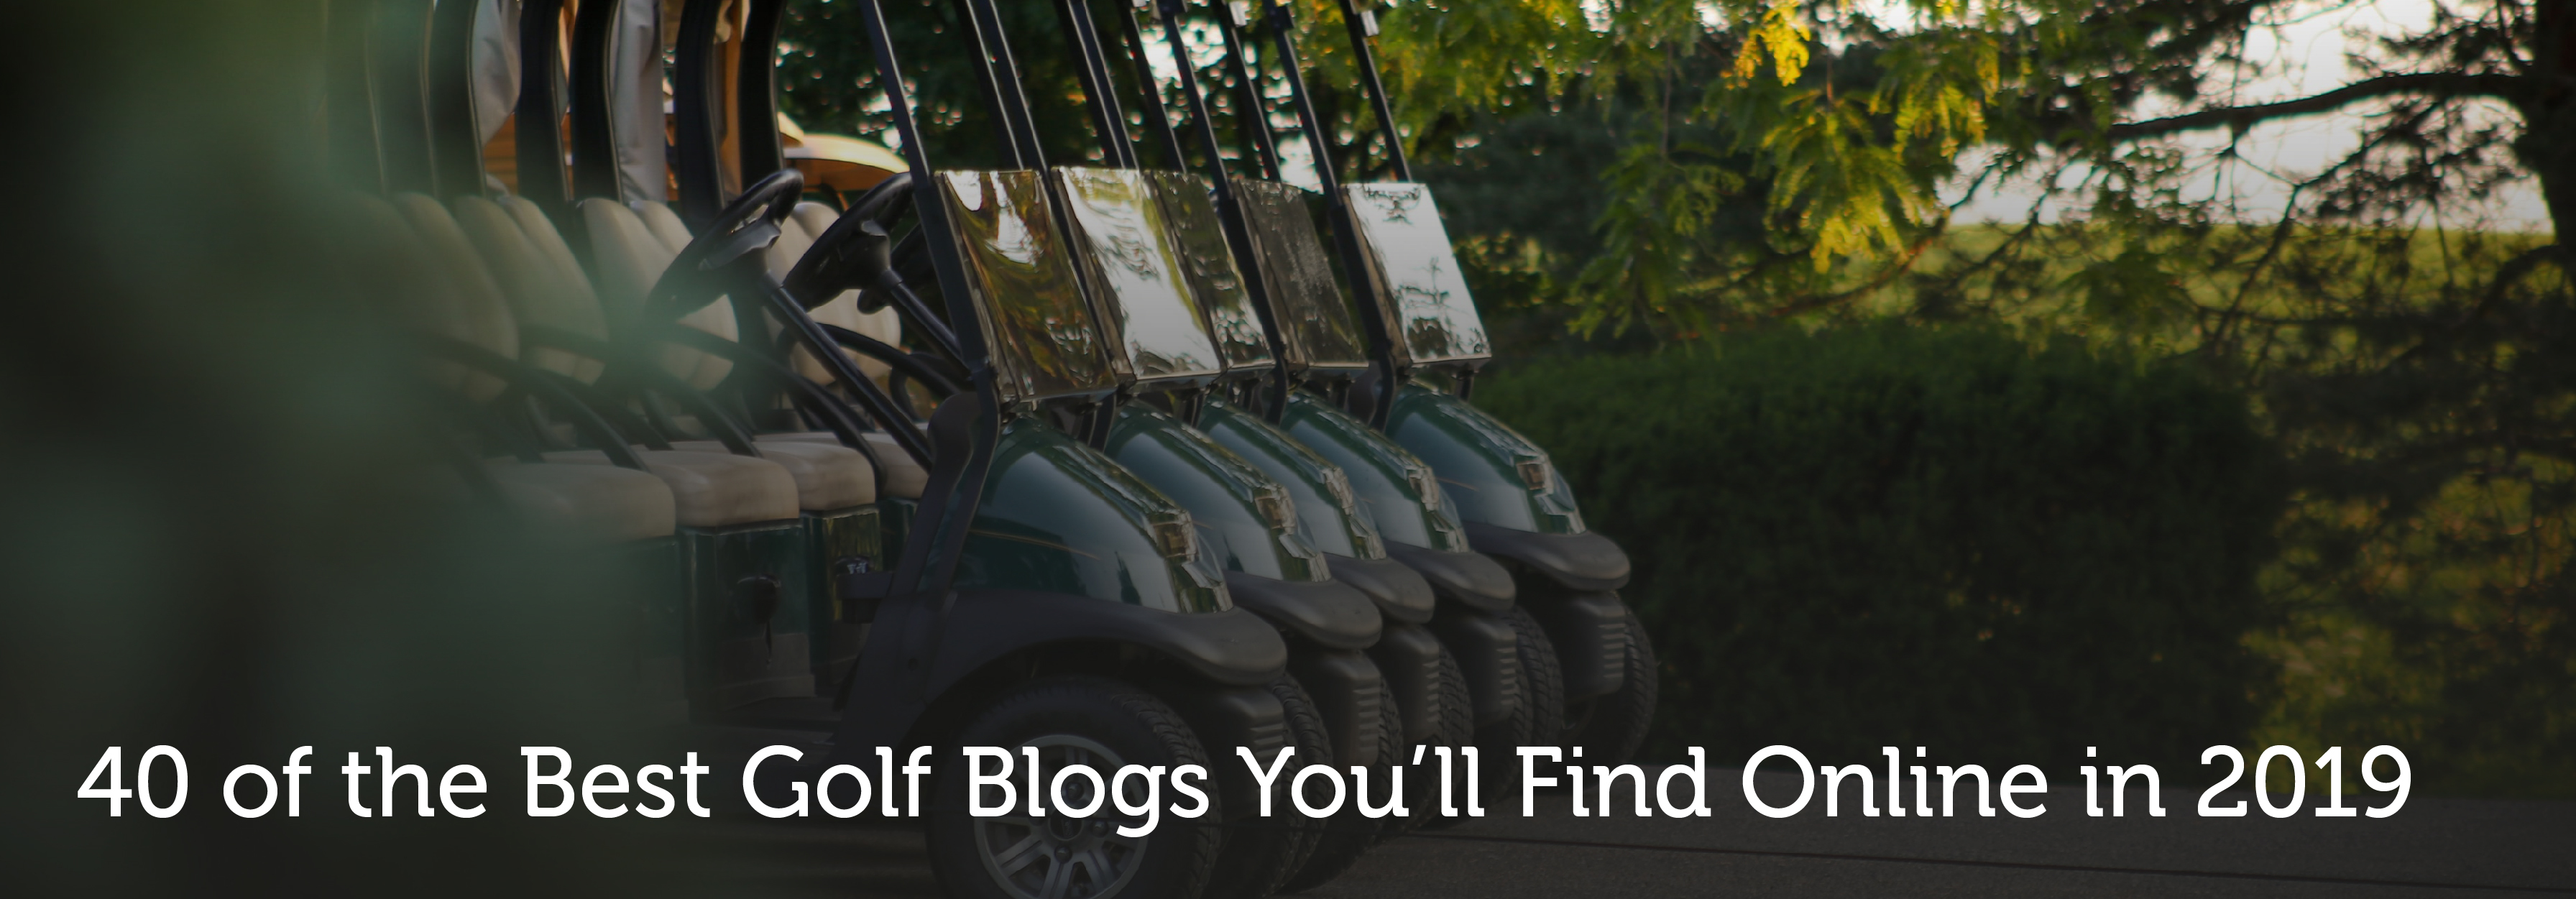 The Best 40 Golf Blogs You'll Find Online in 2019